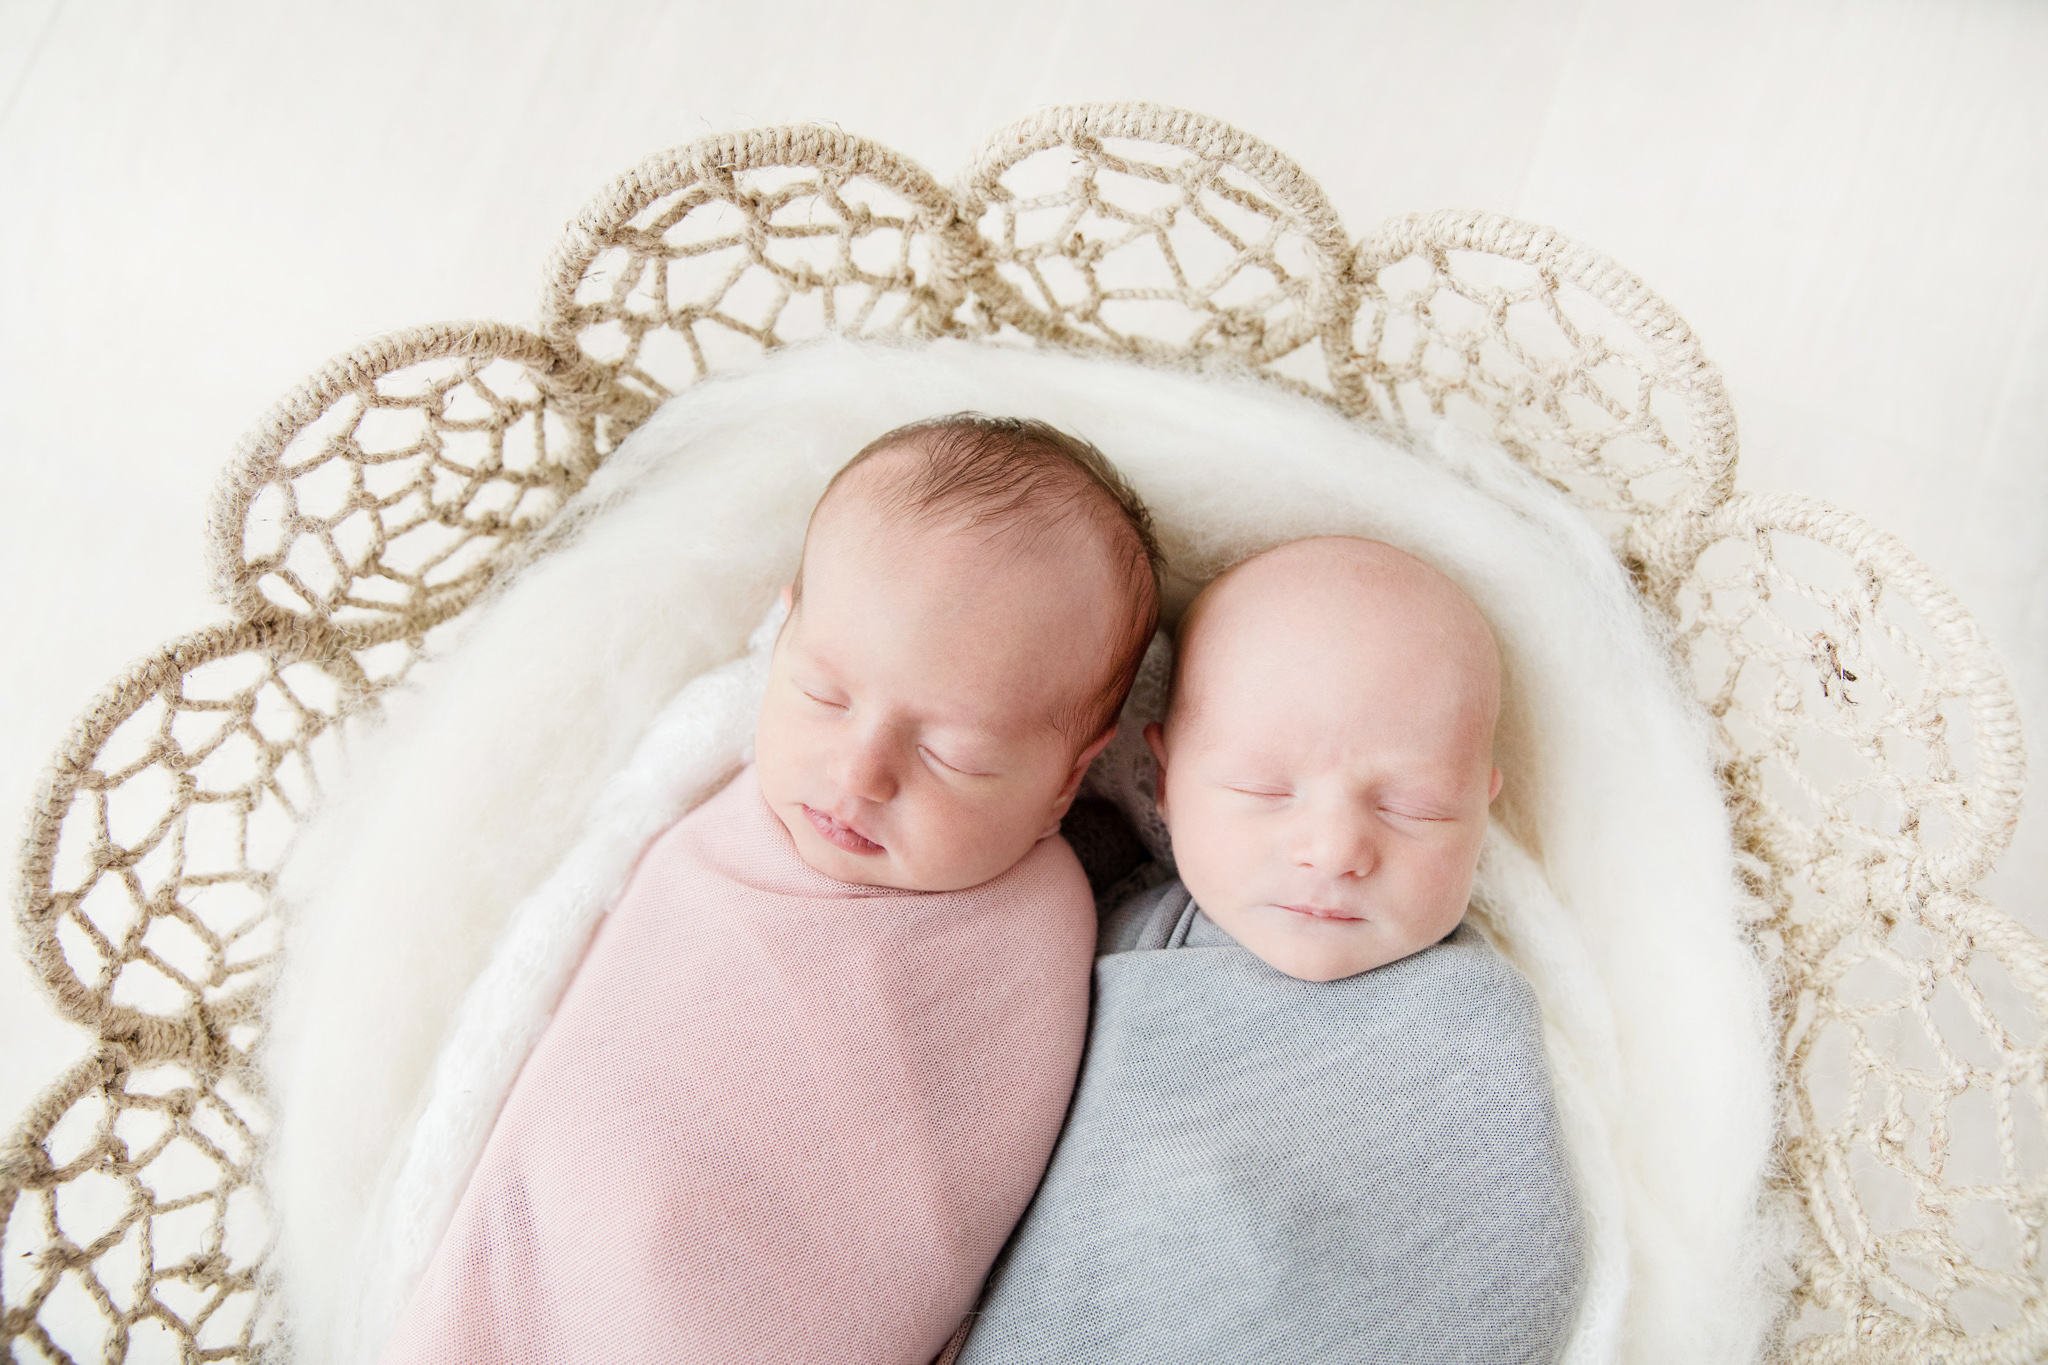 Newborn boy/girl twins in basket together taken at Mel Hill Photography in Canberra.